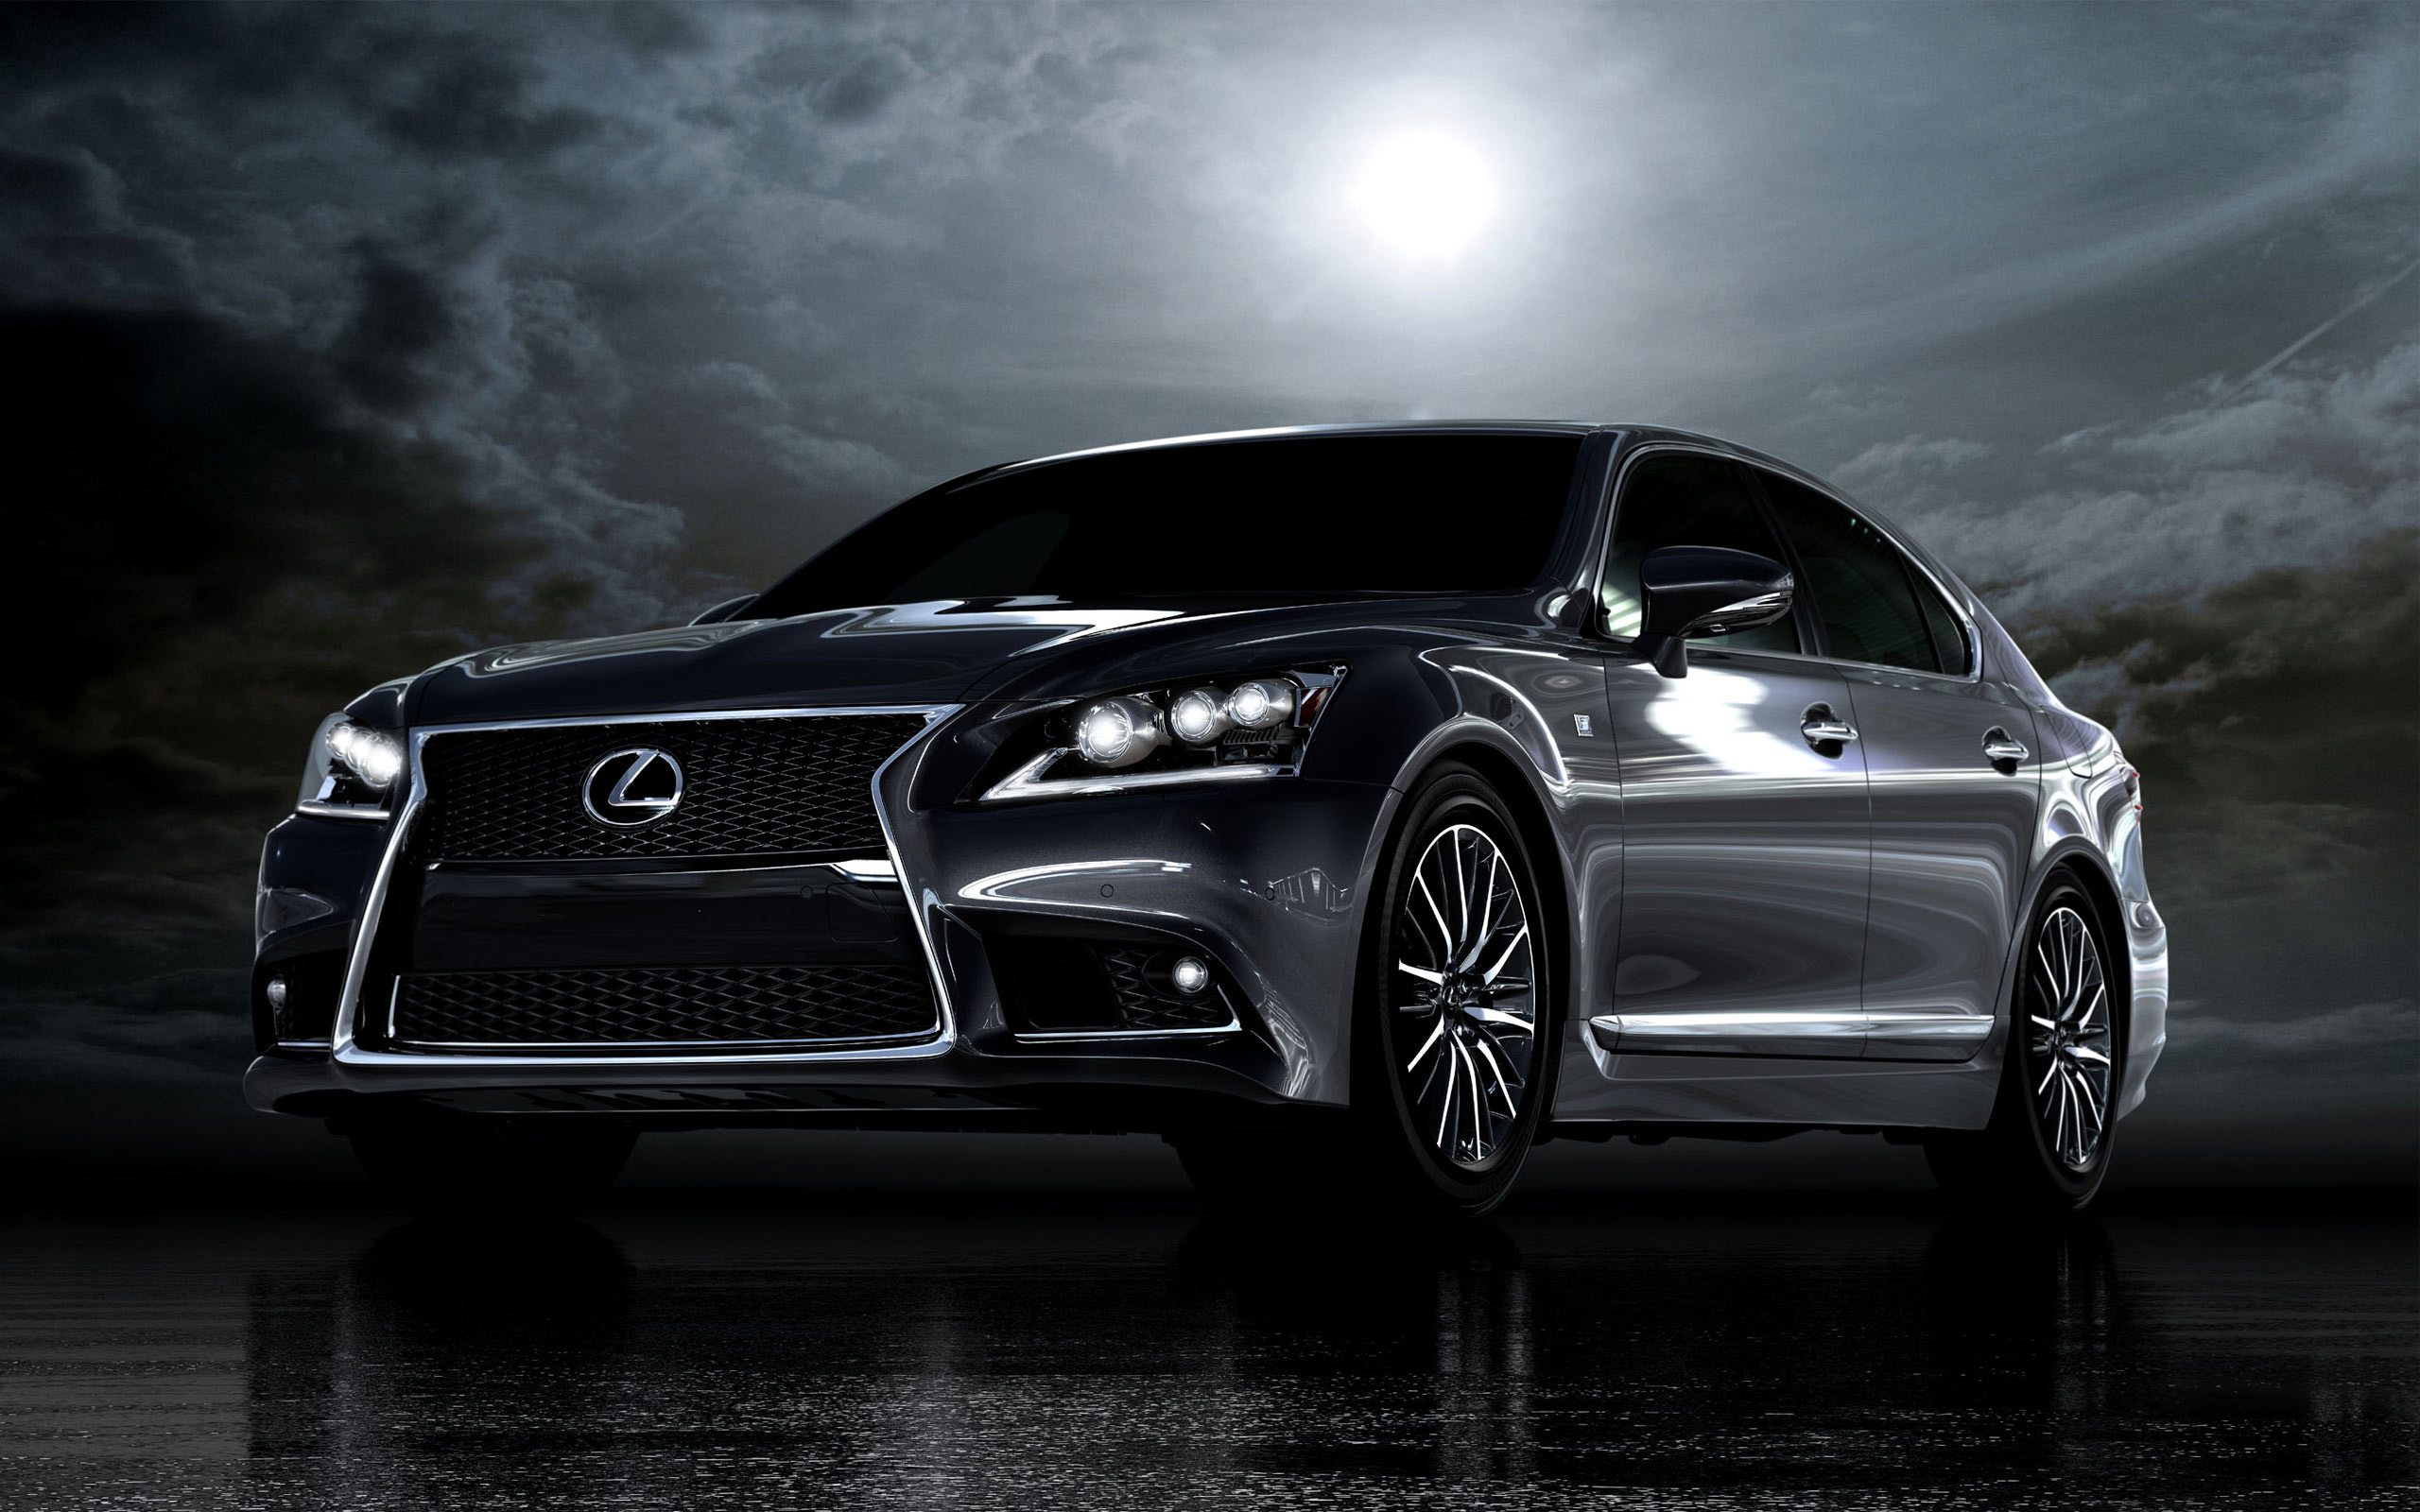 Stunning Lexus Wallpaper